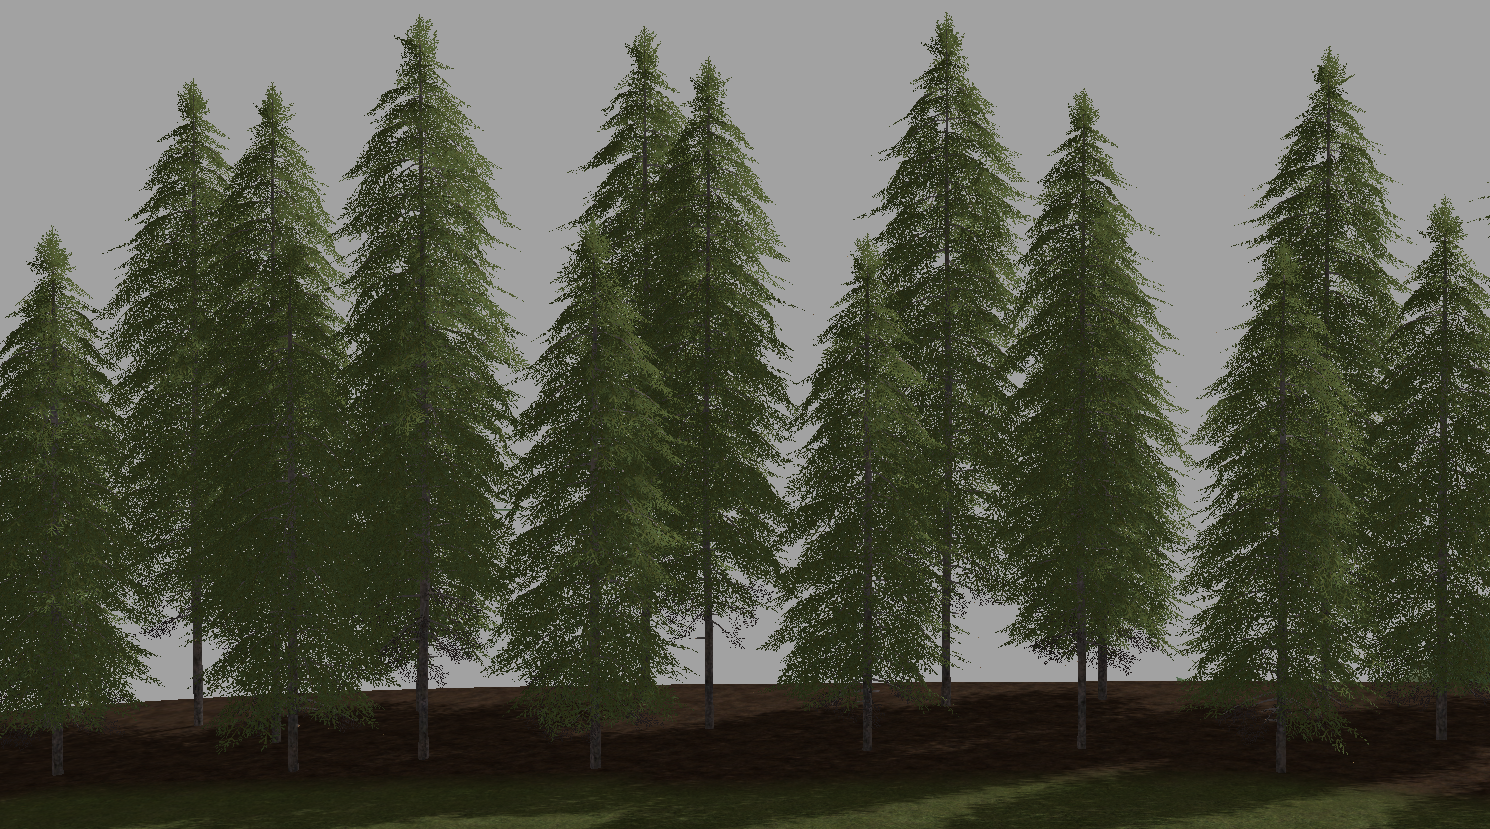 A mixture of stage 4 and 5 spruce using the above technique makes for a more realistic tree line.